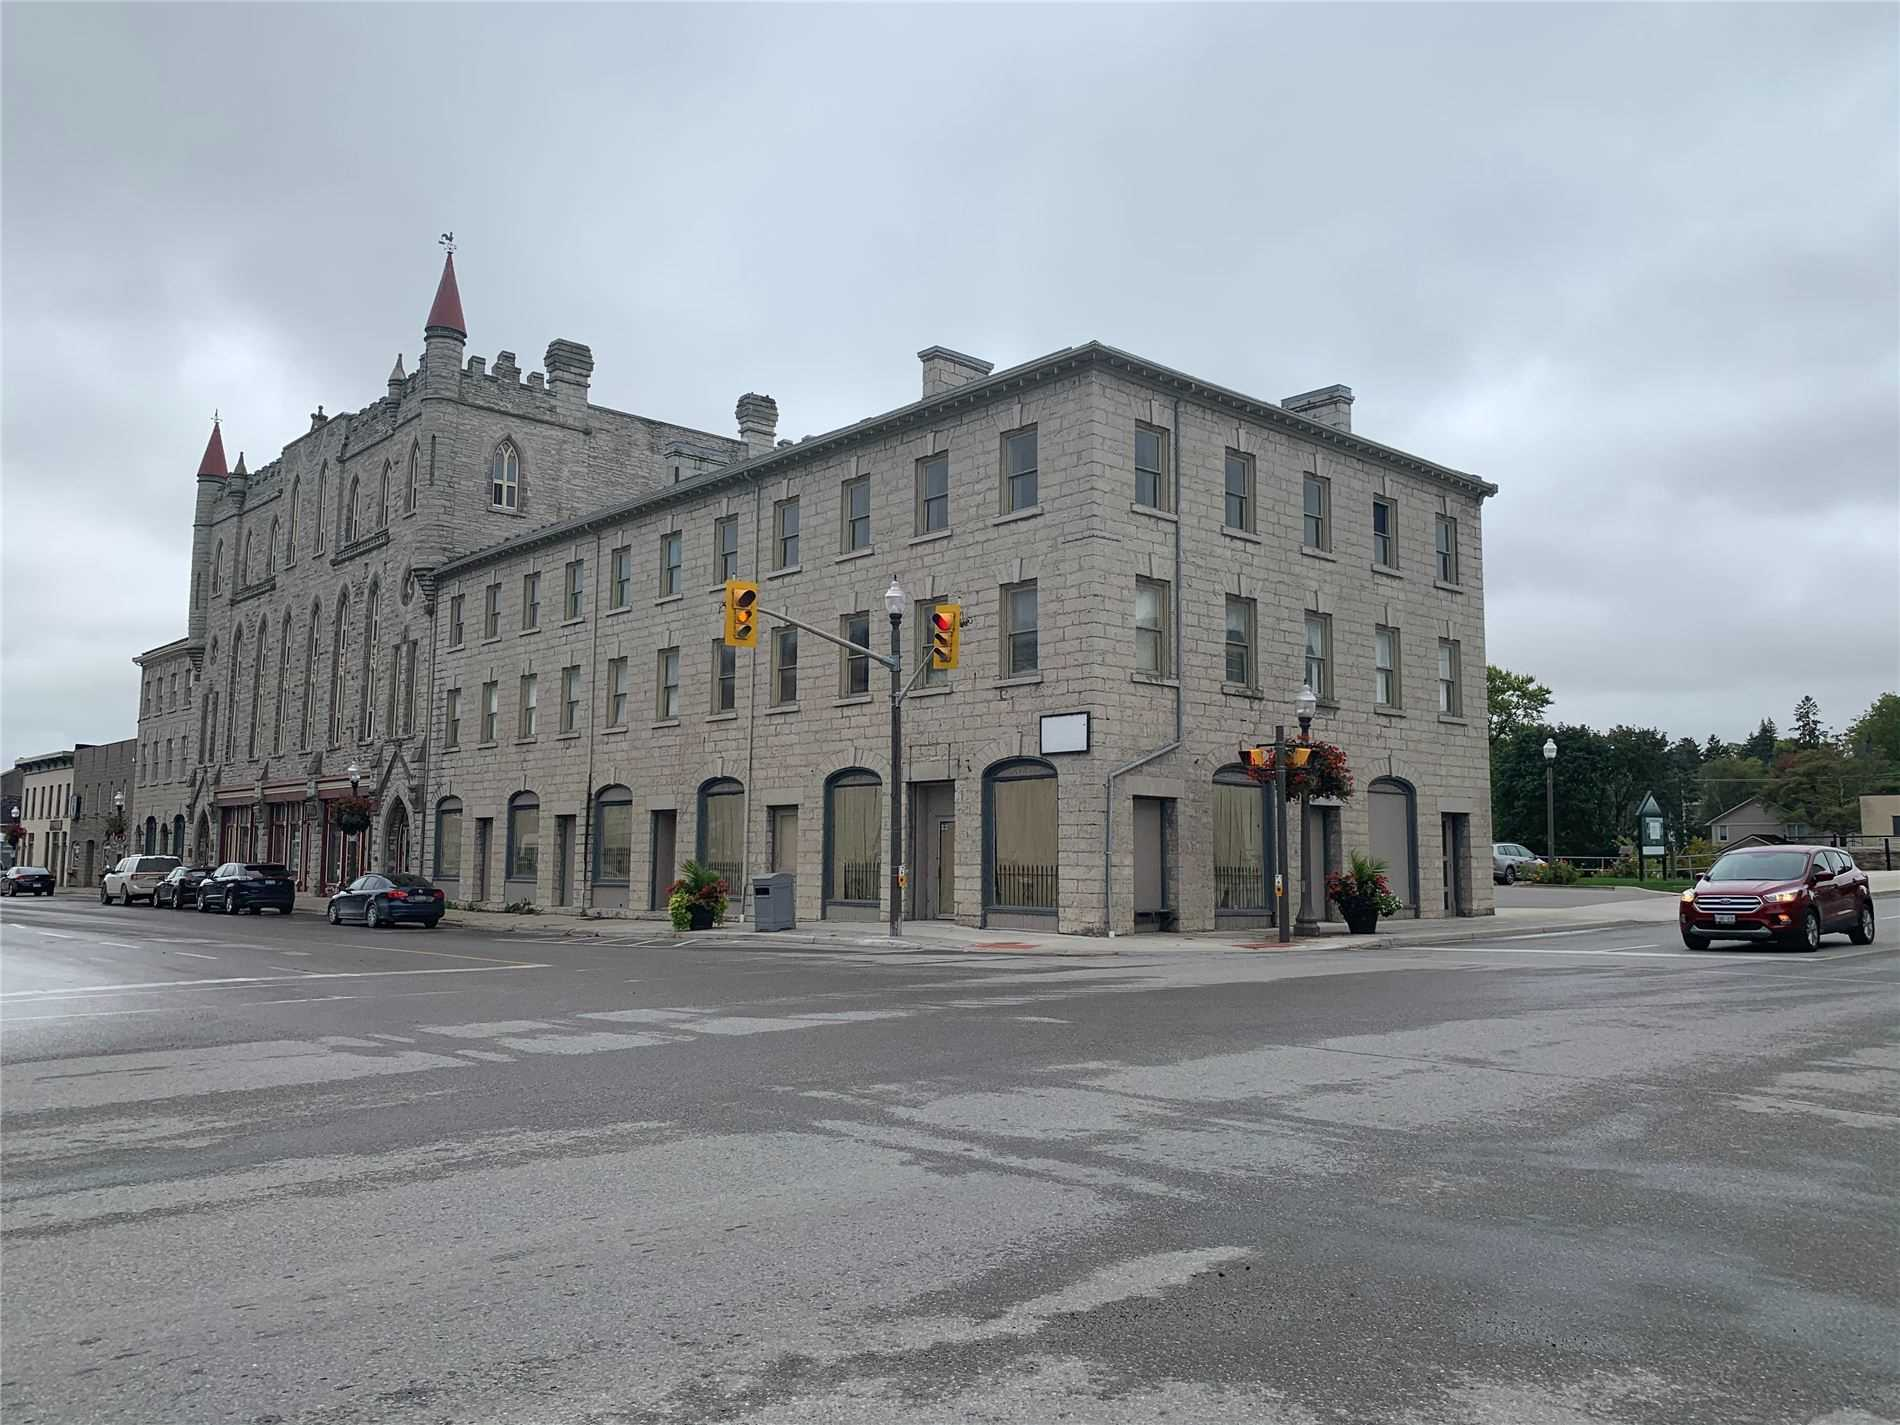 Unique Retail S P A C E For Lease In St. Mary's Ontario. Great High Ceilings And Big Windows. Landlord Will Assist In Build-Out For The Right Users. Be Part Of The Gentrification Of This Beautiful Property And Up And Coming Neighbourhood.  Ideal For Retail. Cafe/ Restaurant, Cannabis, Office And More. This Is A Must See!